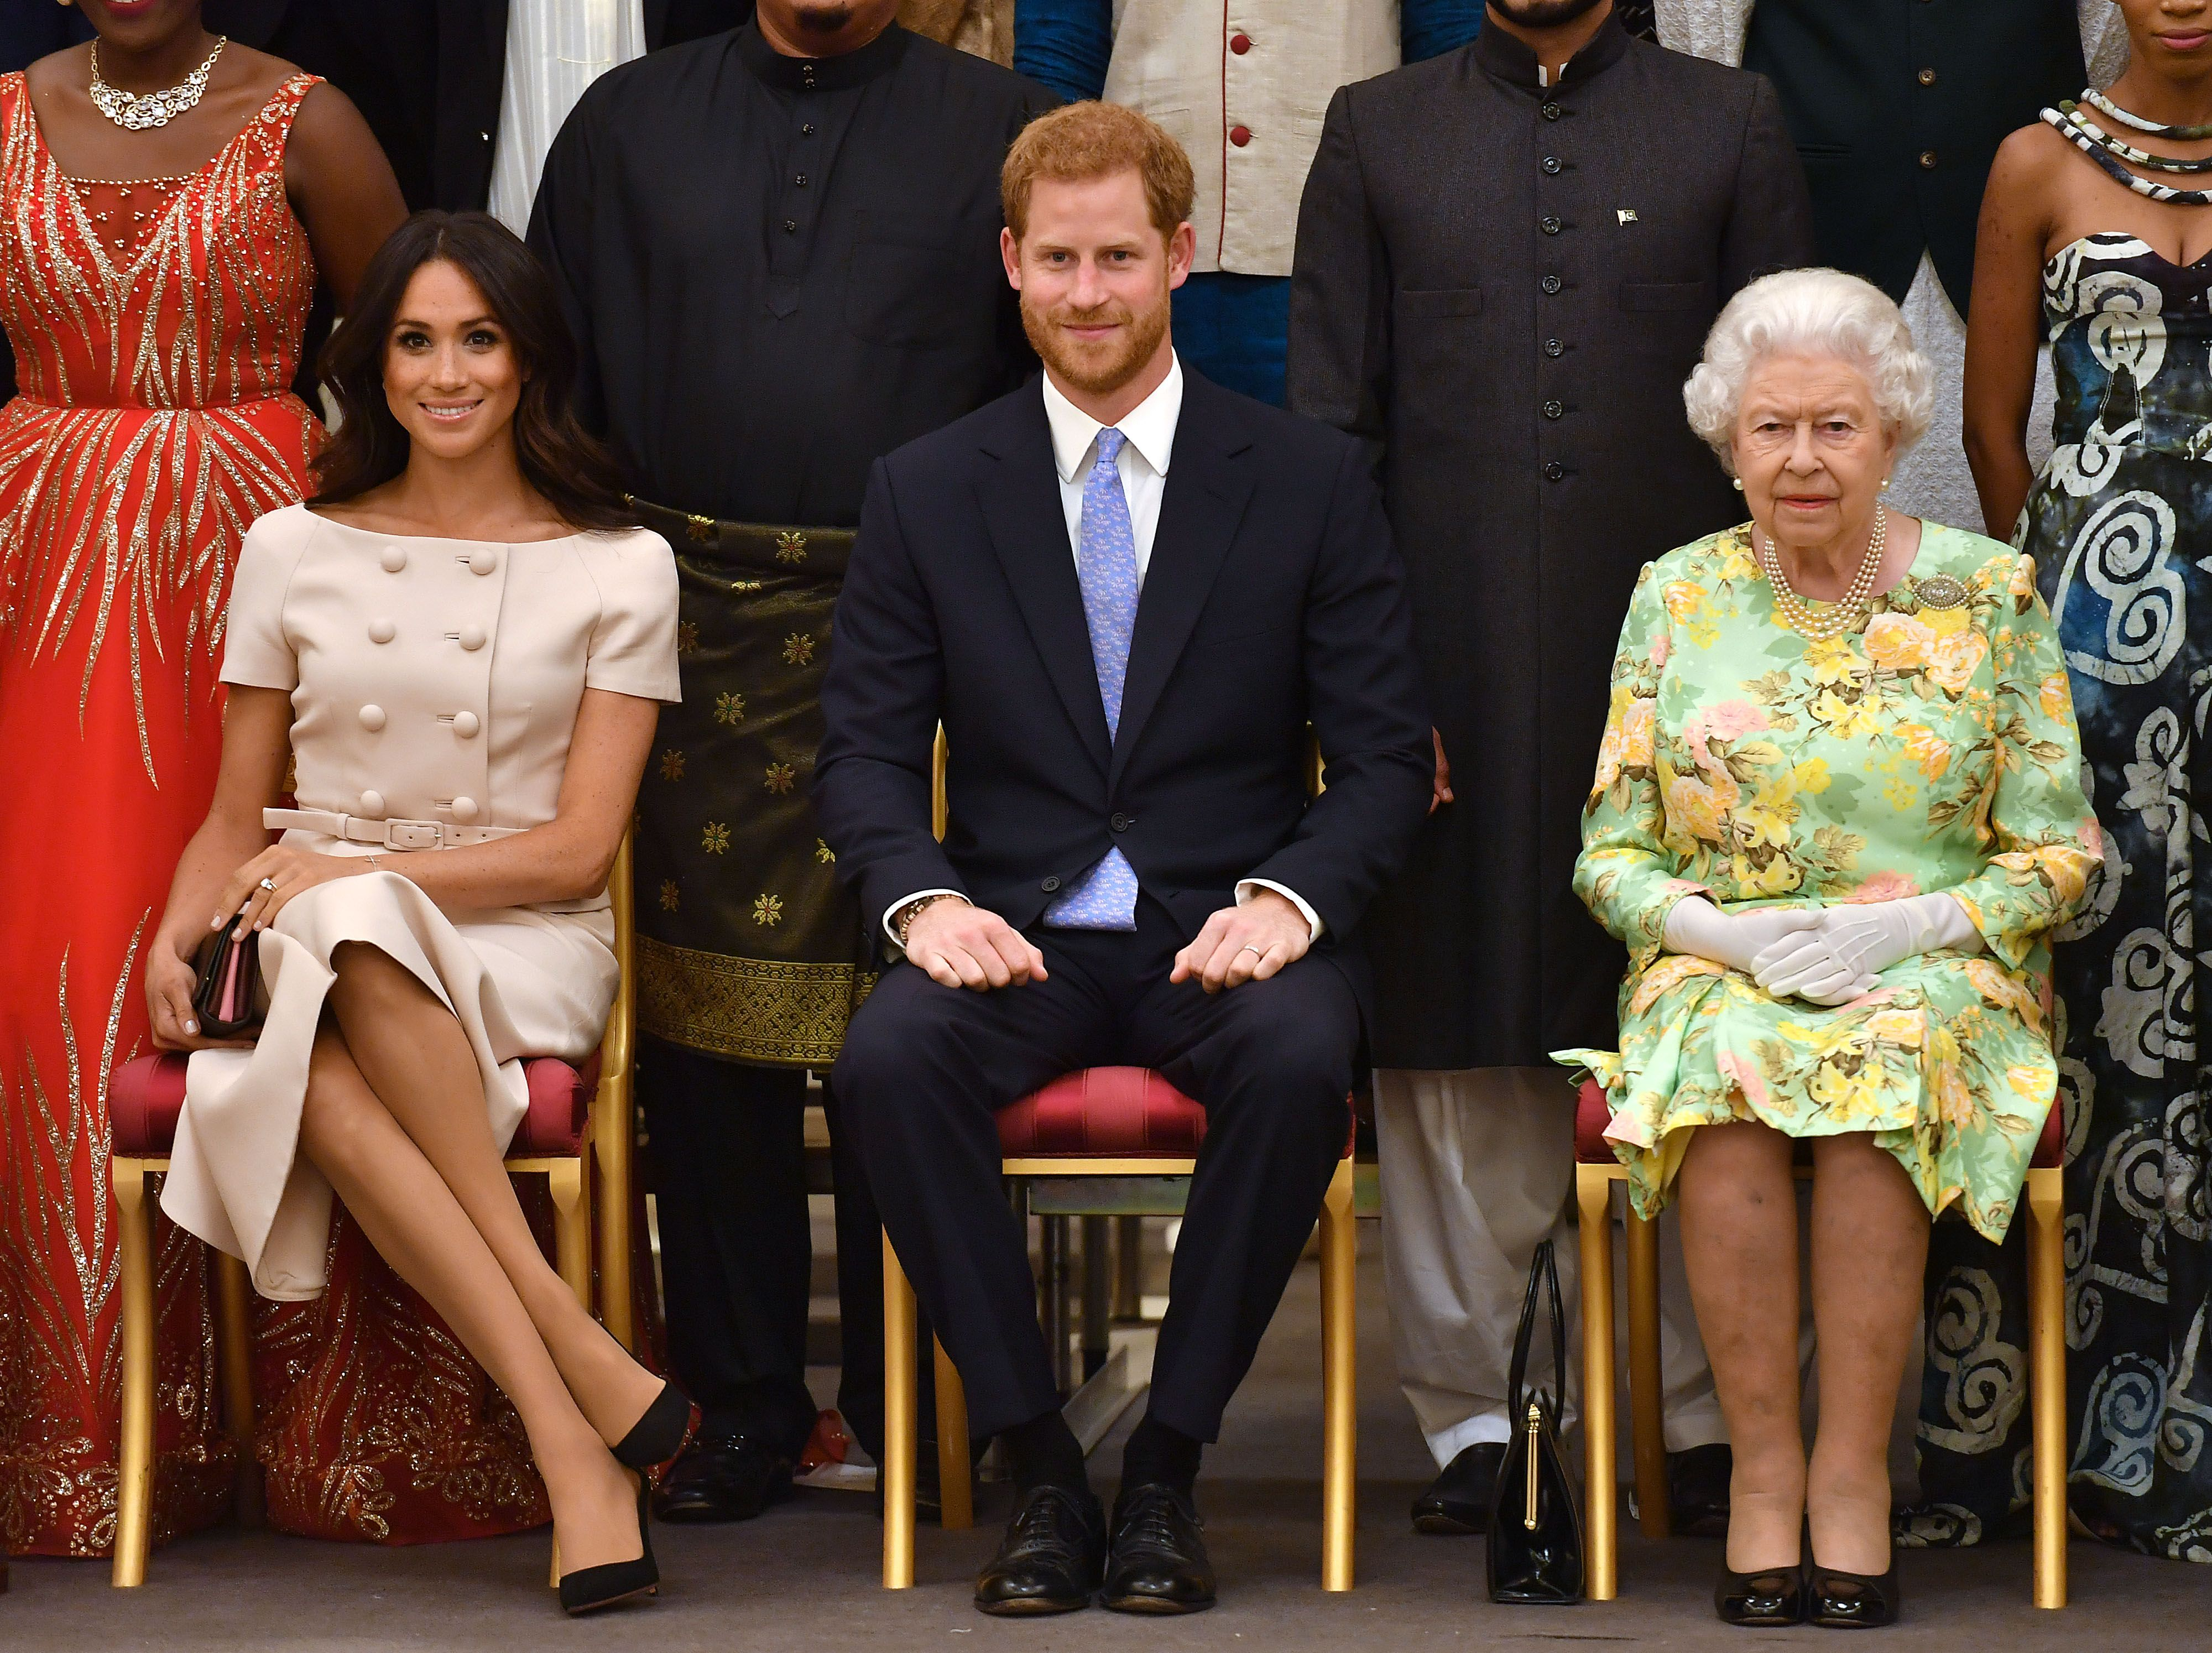 Prince Harry to Meet with African Leaders After Stepping Down as a Senior Royal